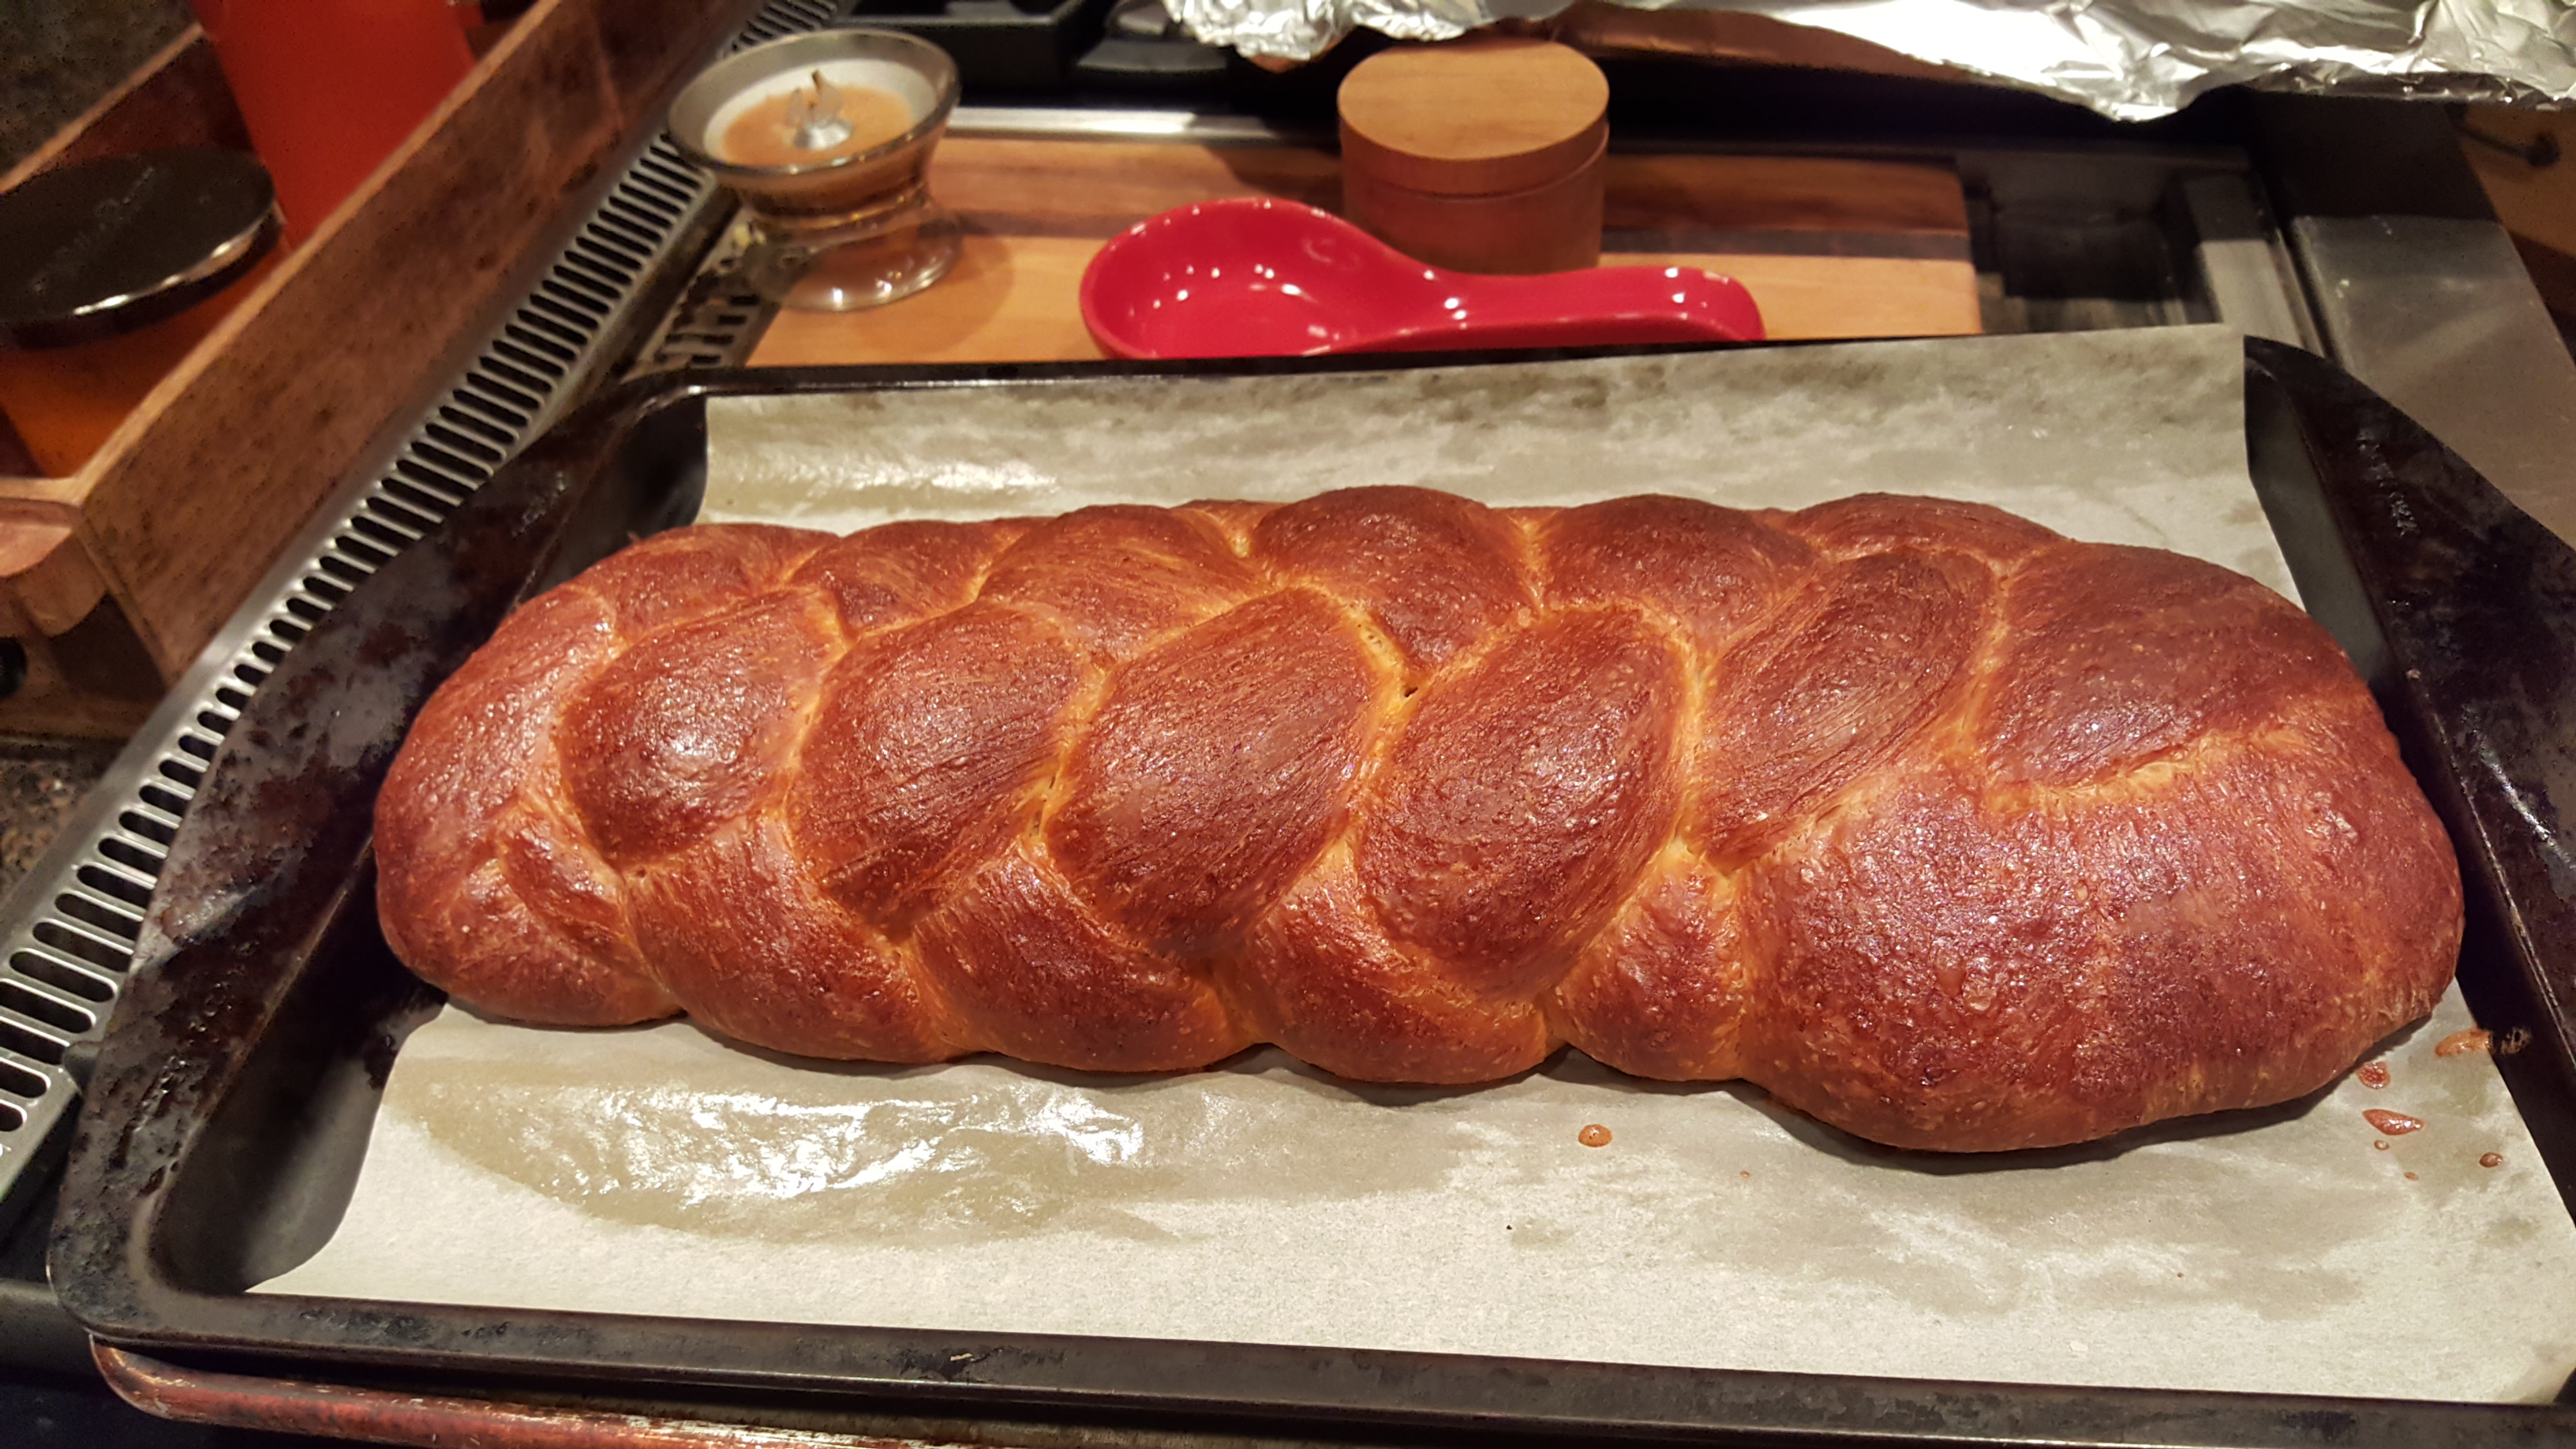 Most Amazing Challah Dianne Wallace